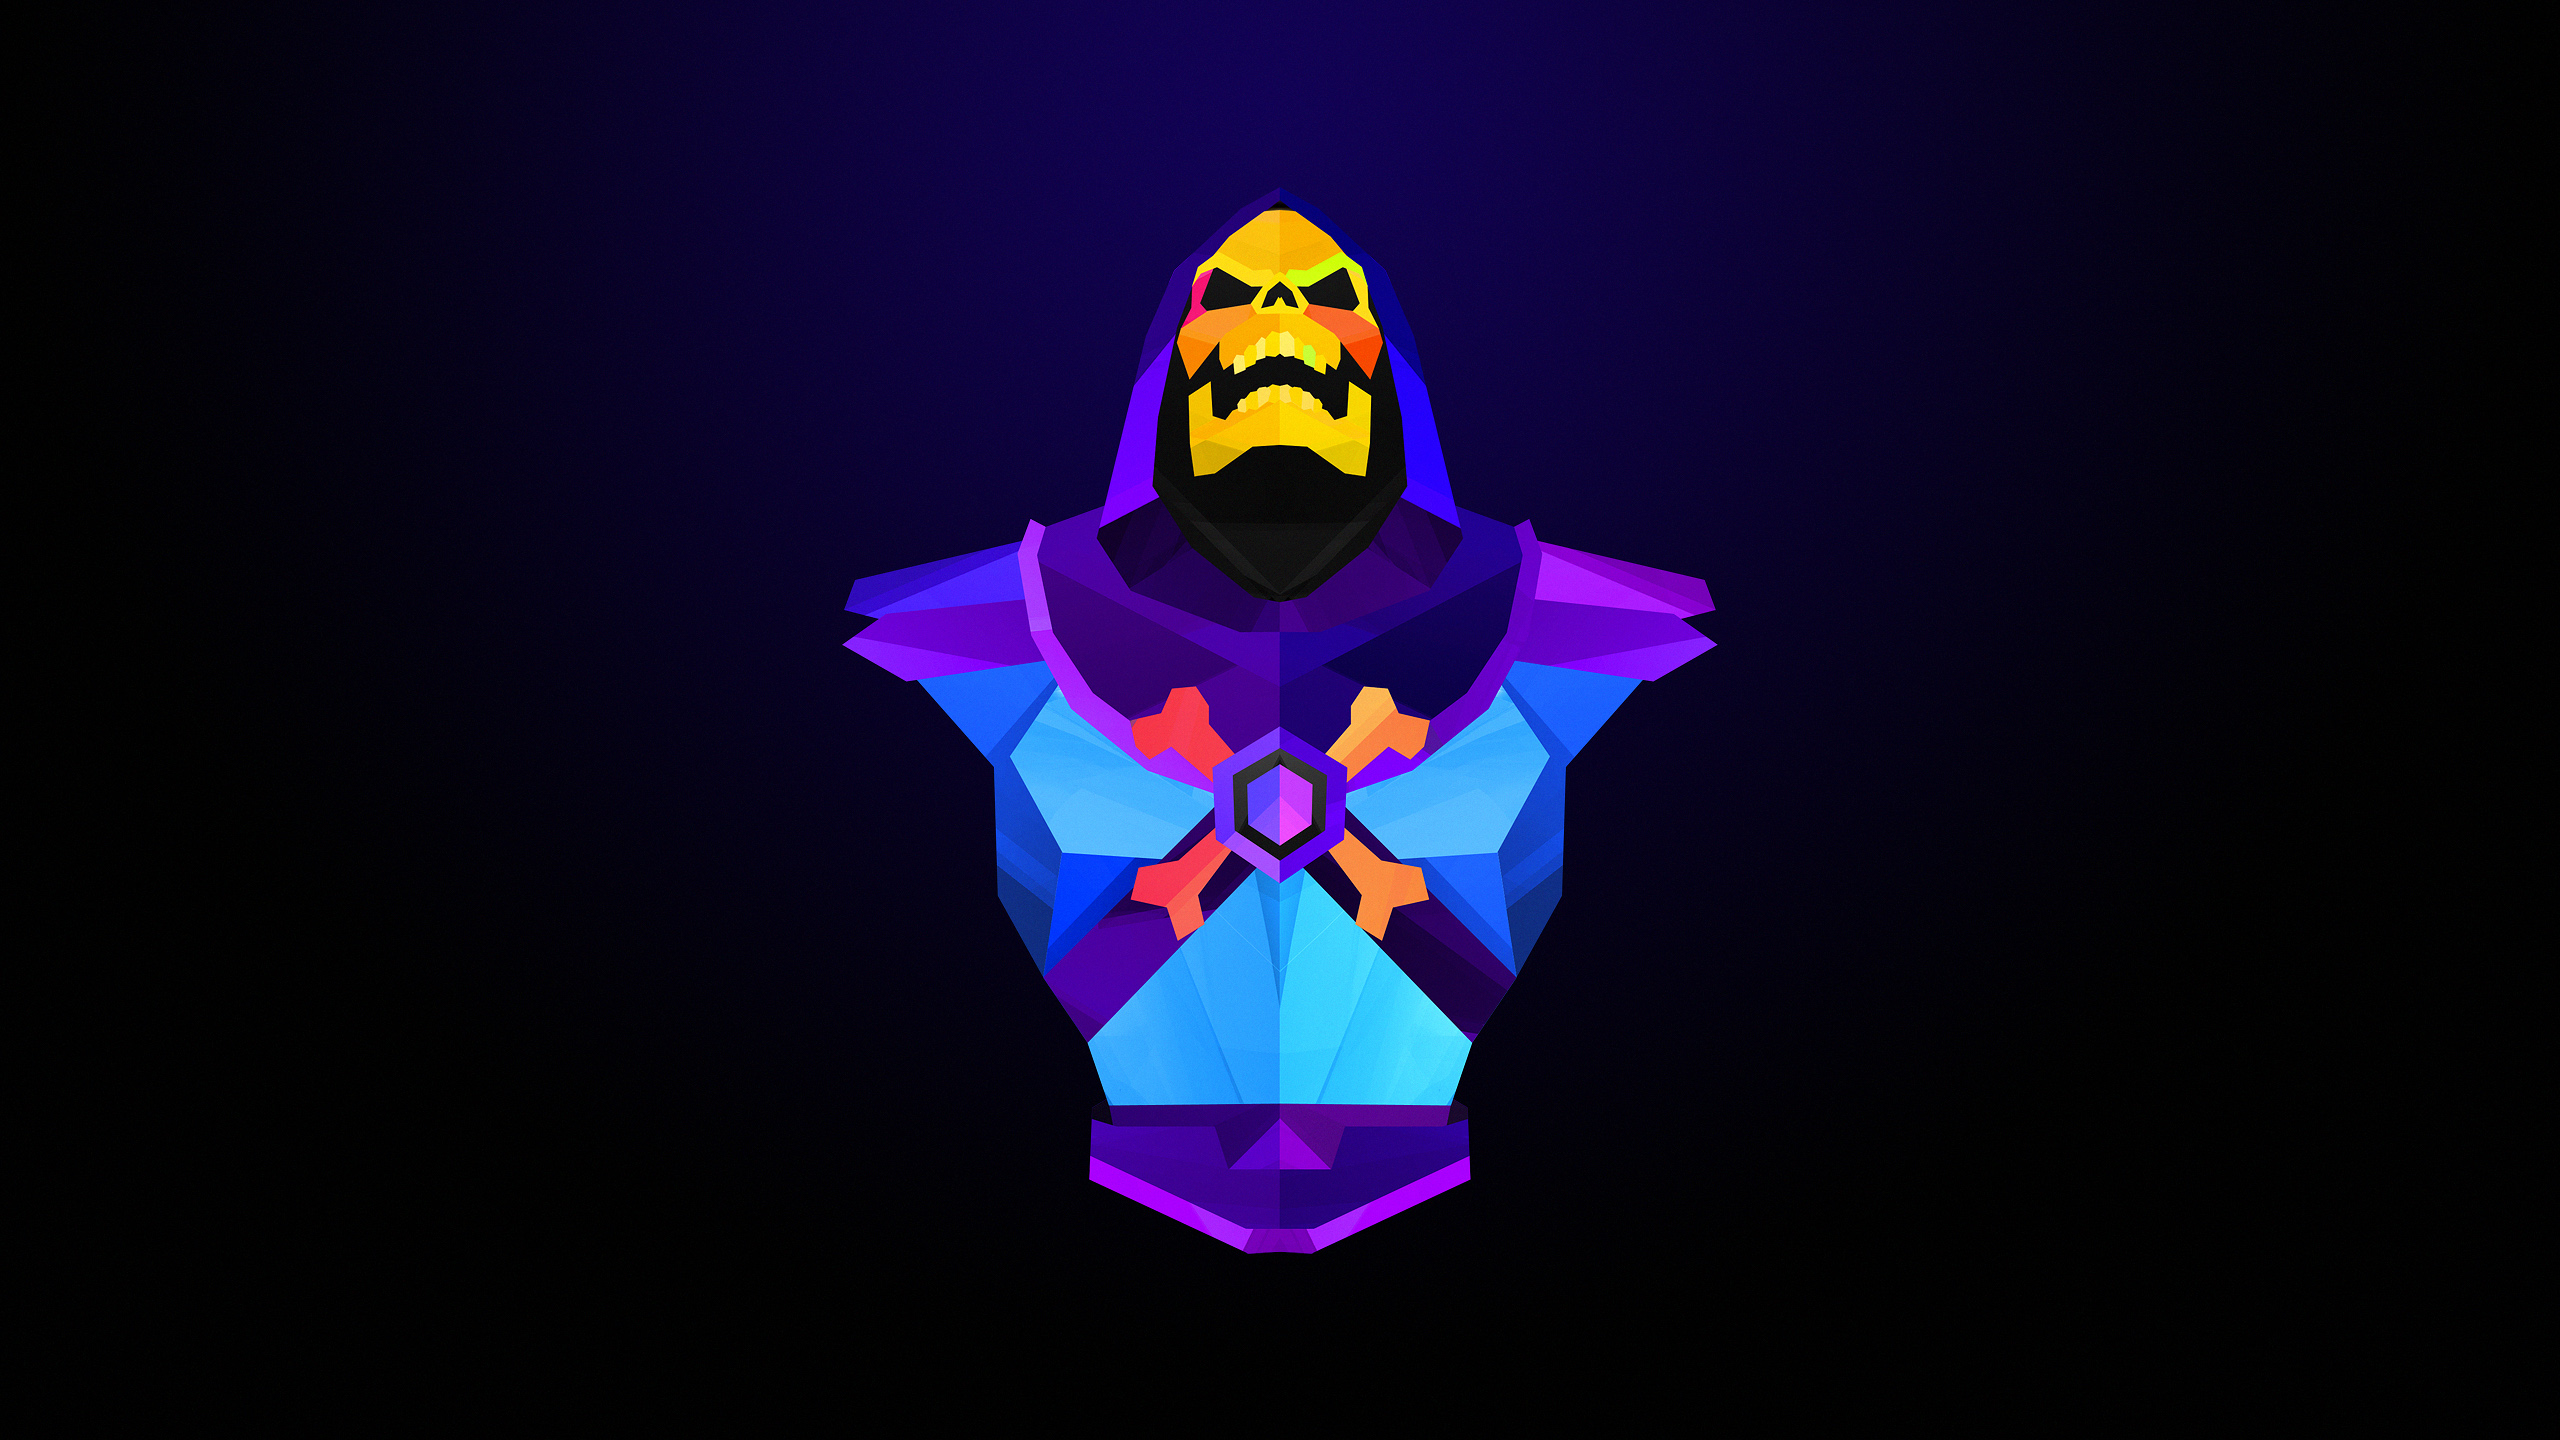 skeletor by justin maller 2560x1440 do you know more people like him please comment below